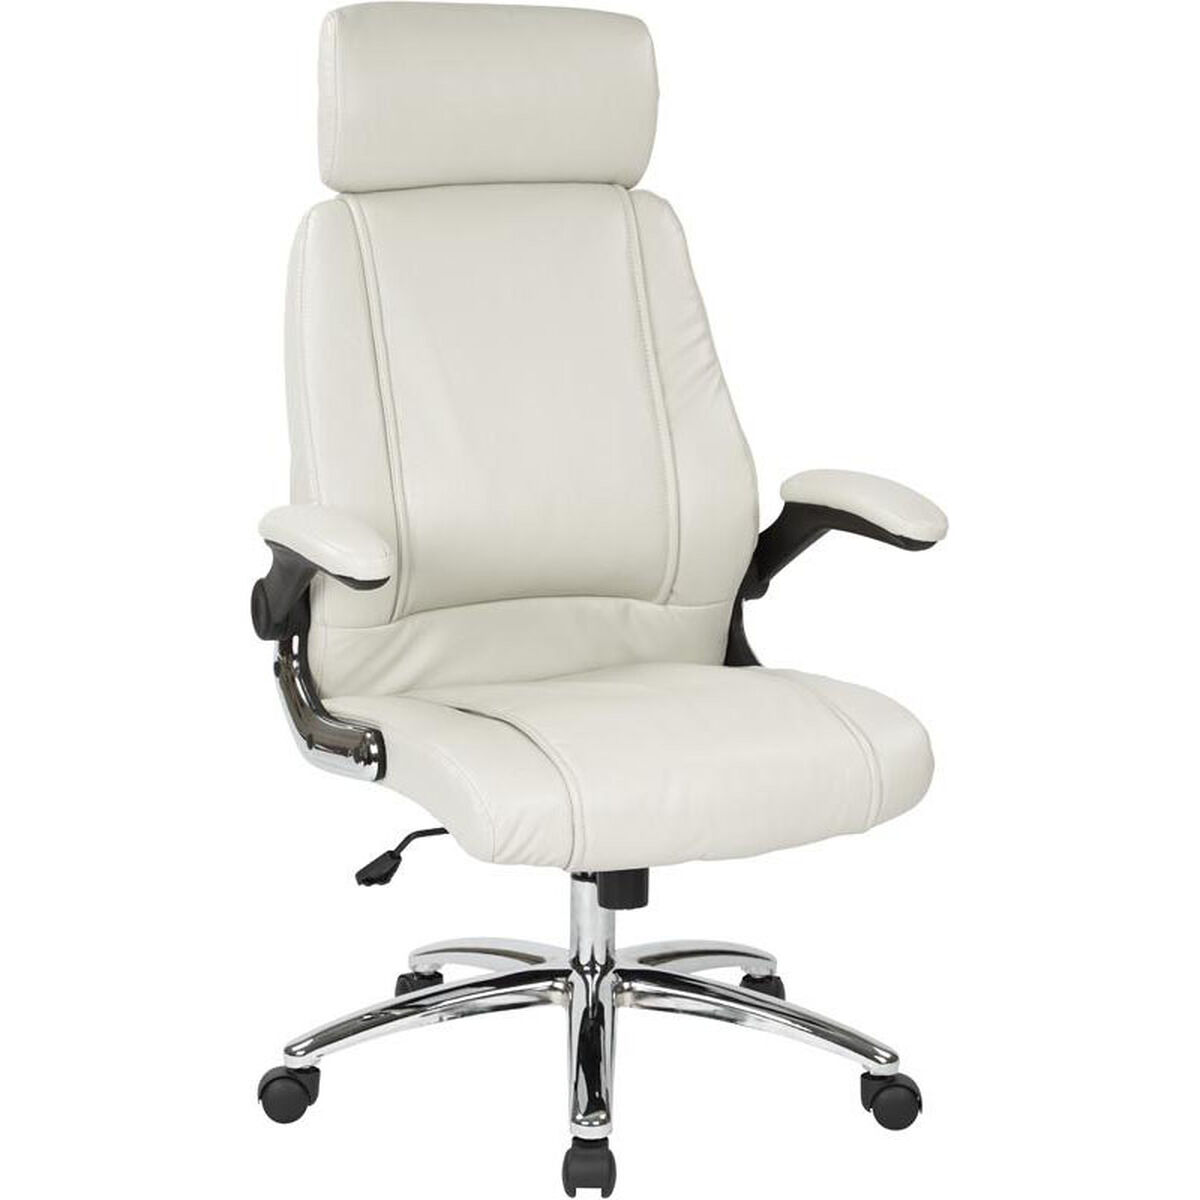 Our Work Smart Executive Faux Leather Office Chair With Chrome Metal Base Cream Is On